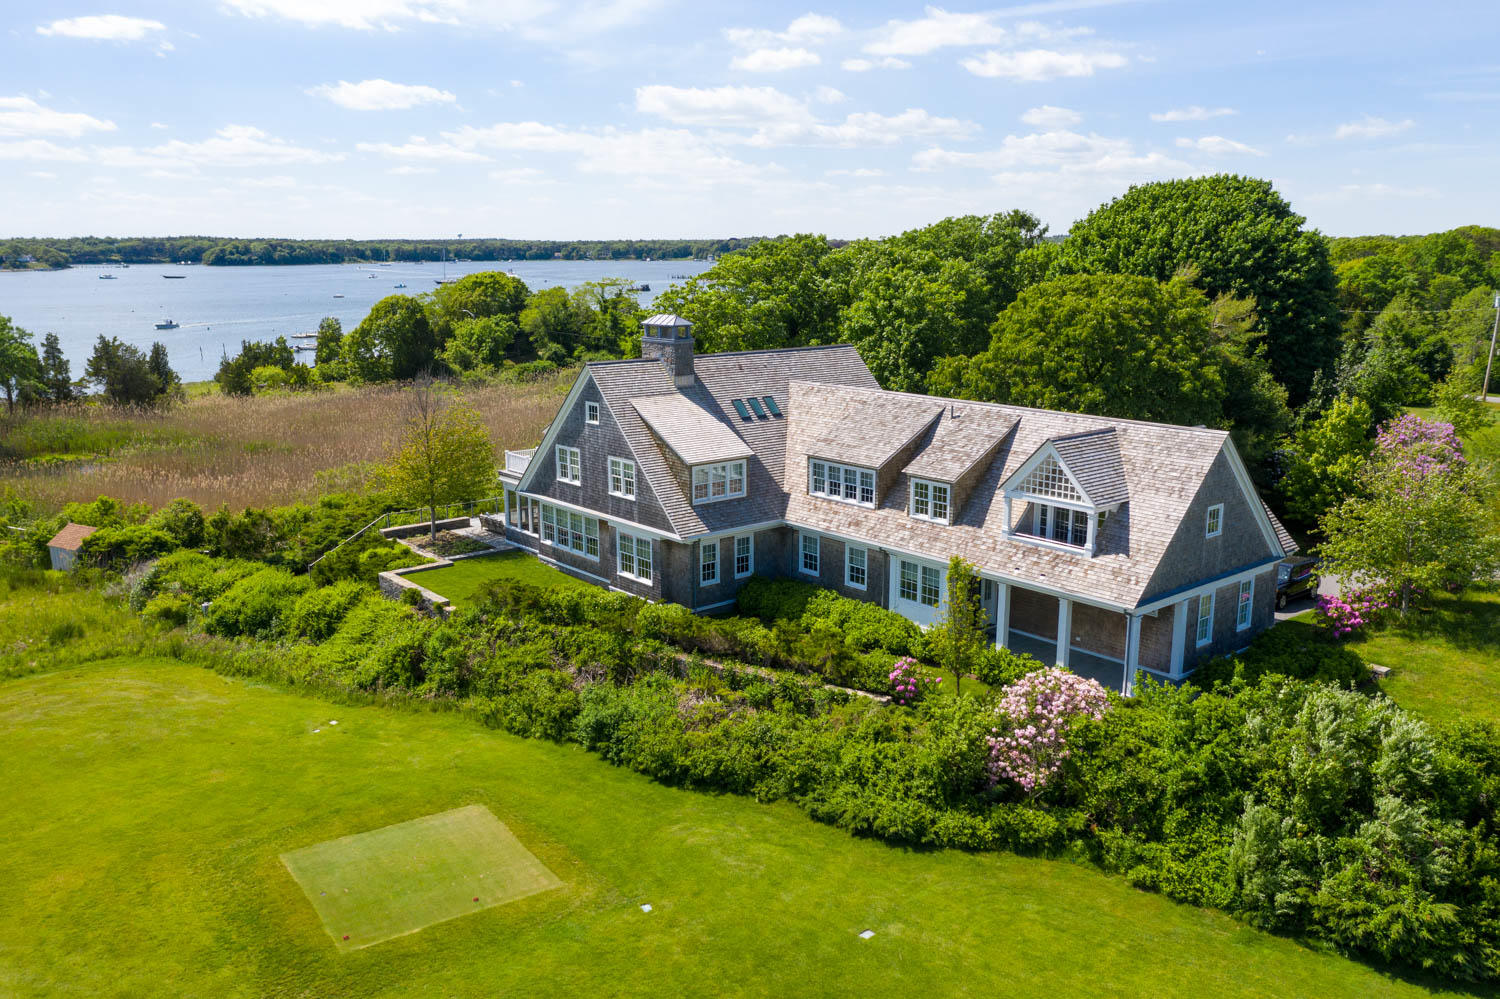 183 Bay Street, Osterville MA, 02655 details